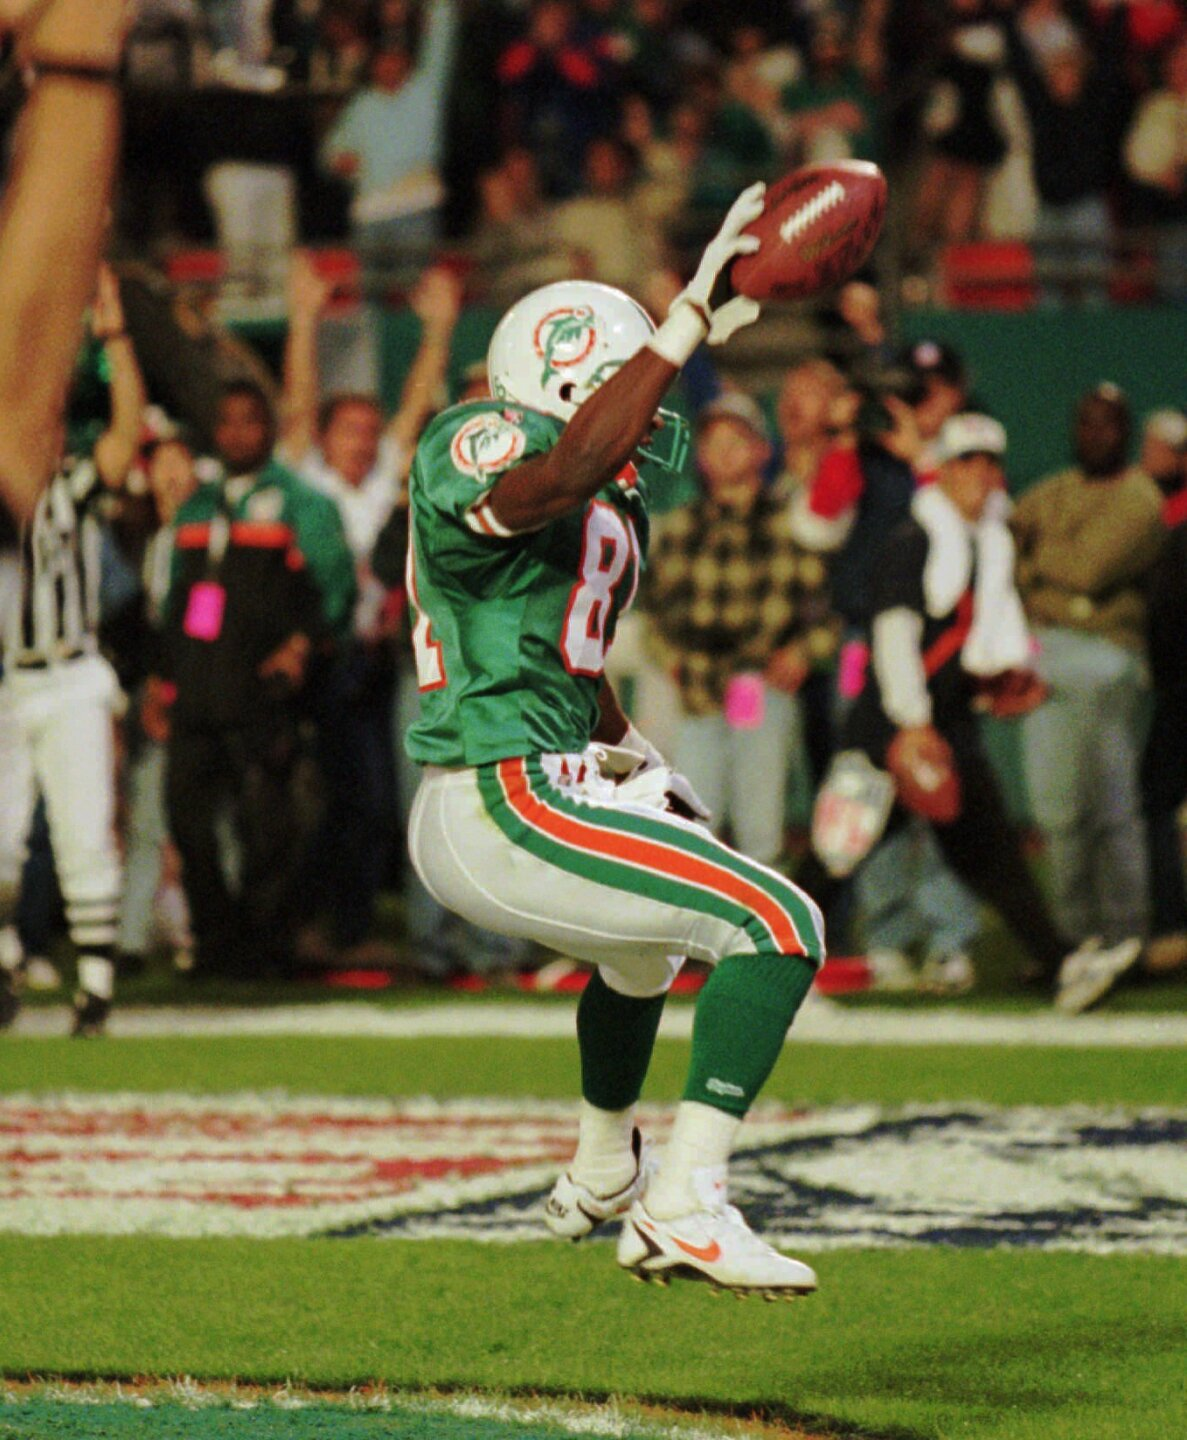 Miami Dolphins wide receiver O.J. McDuffie in 1995